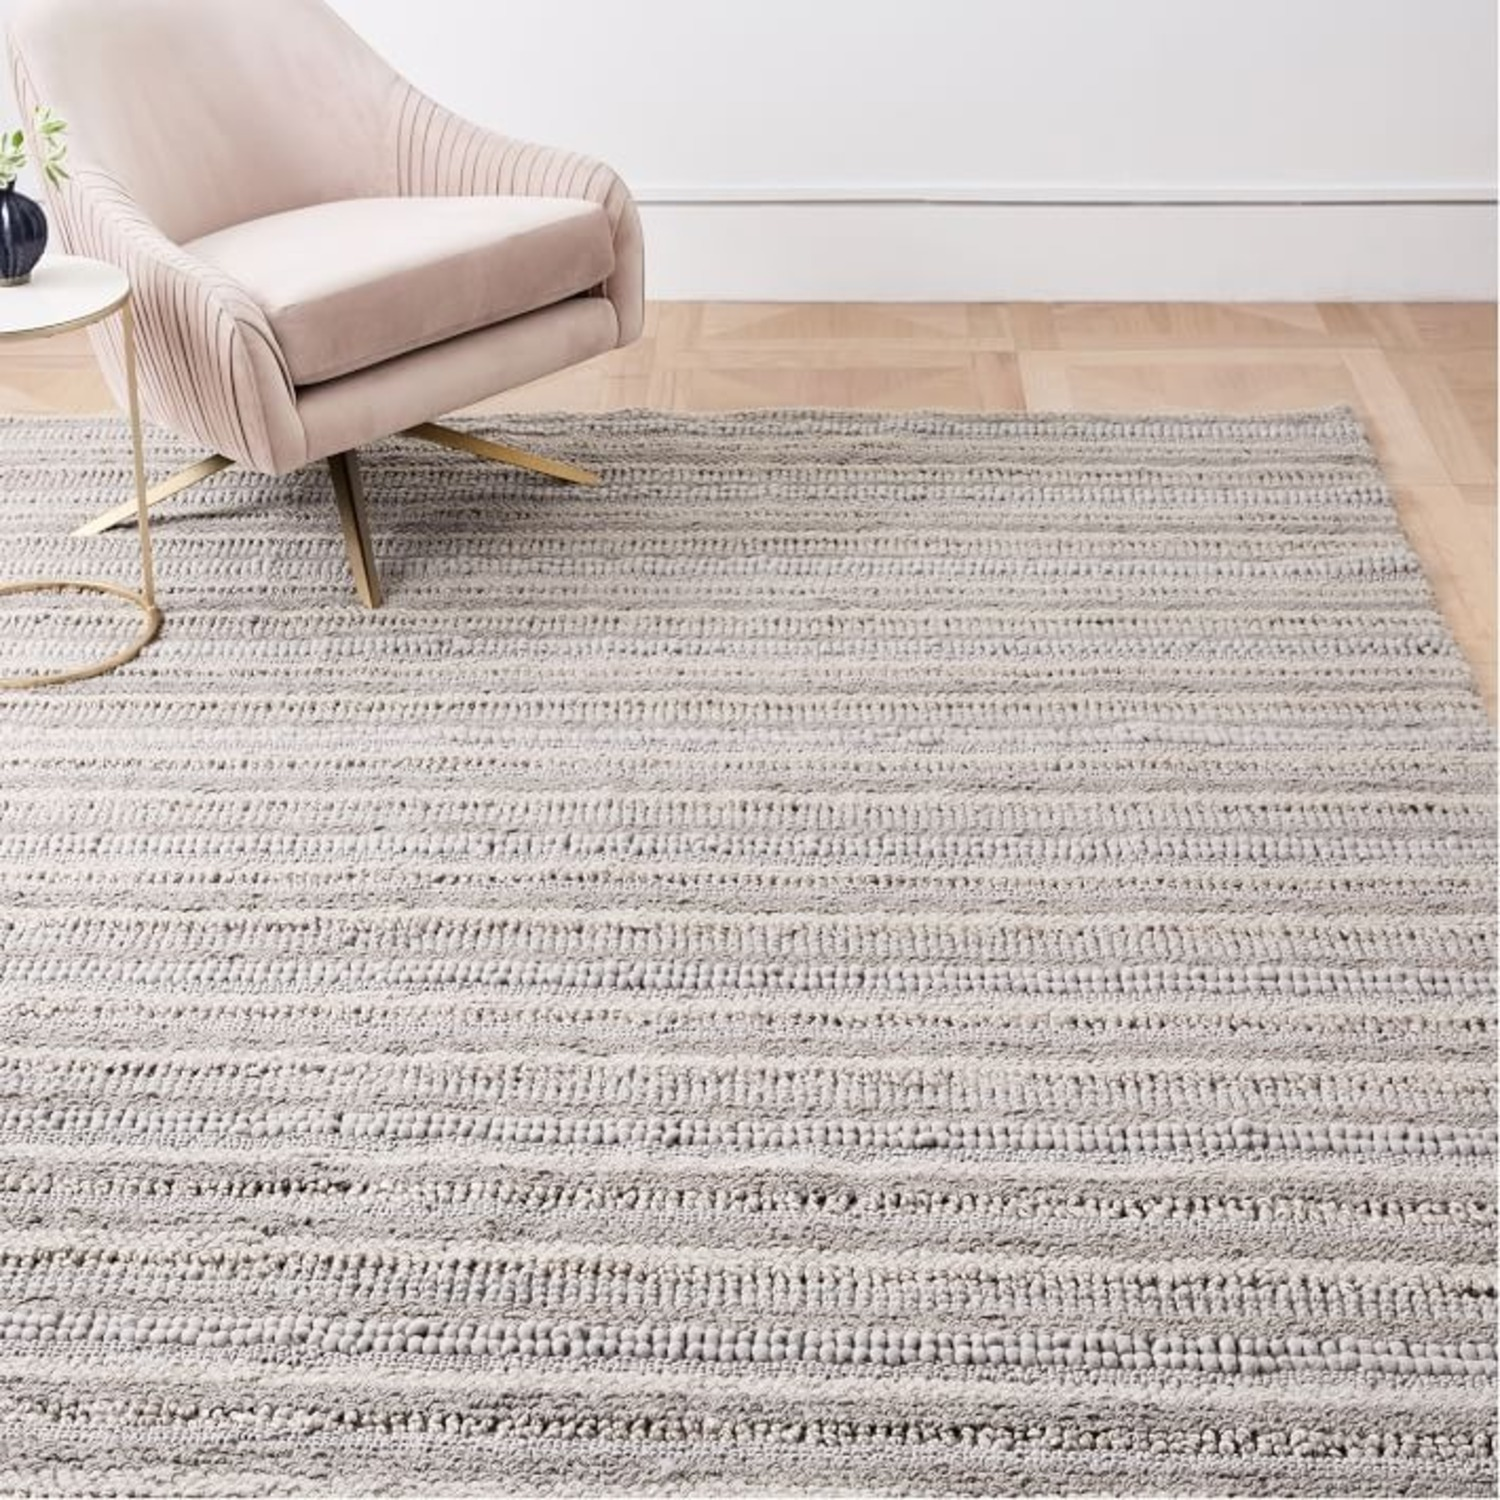 West Elm Stitched Mix Sweater Rug - image-3